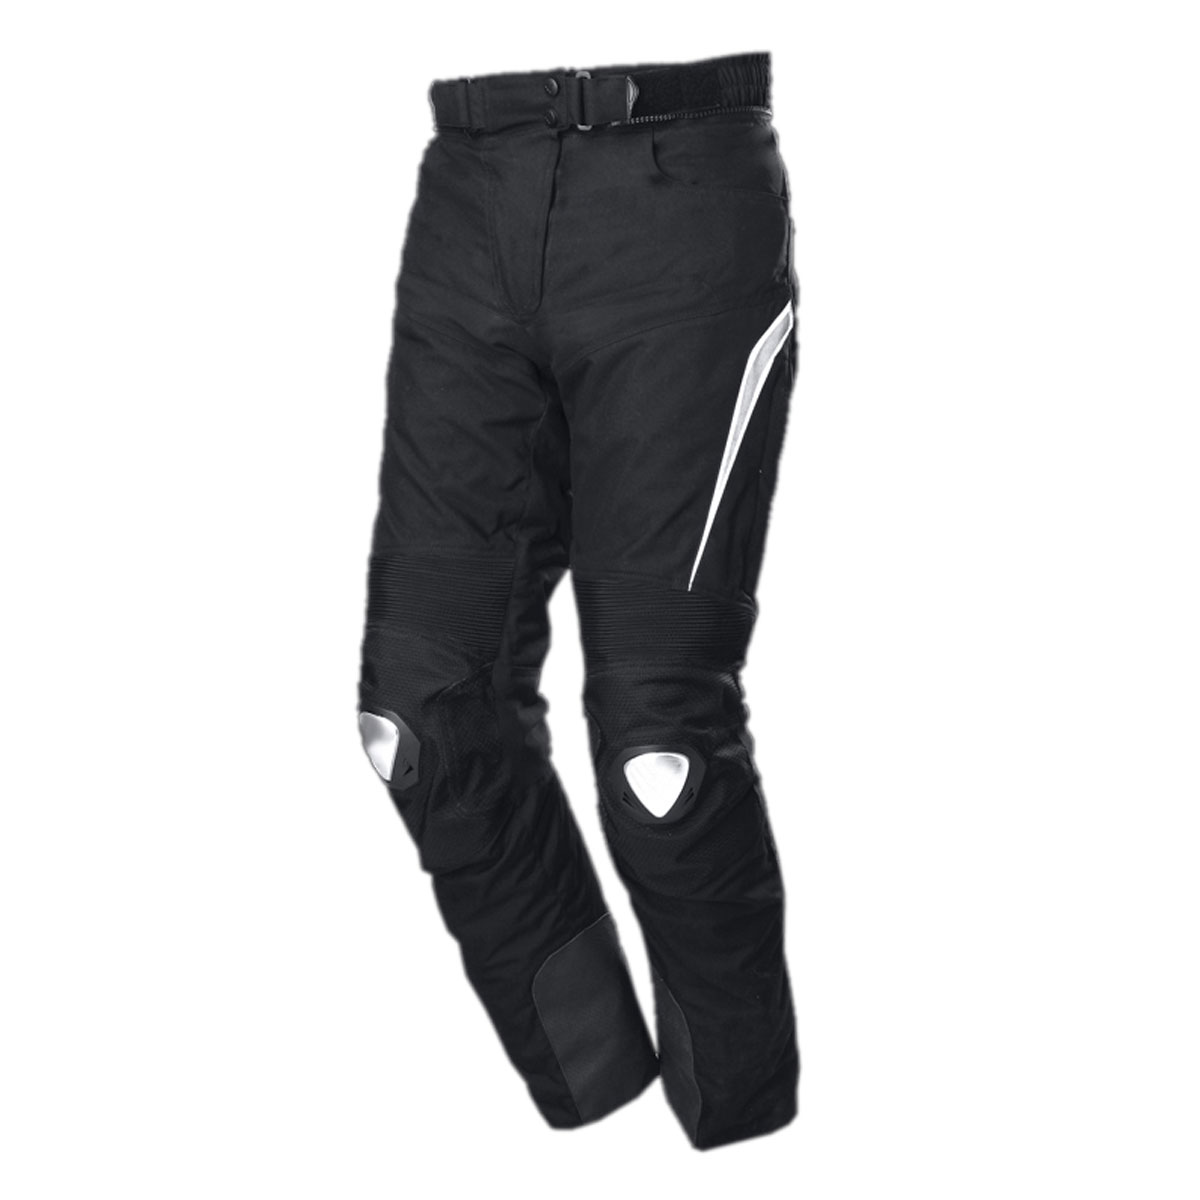 BLACK FEMALE CORDURA PANT WITH WHITE KNEE SUPPORT